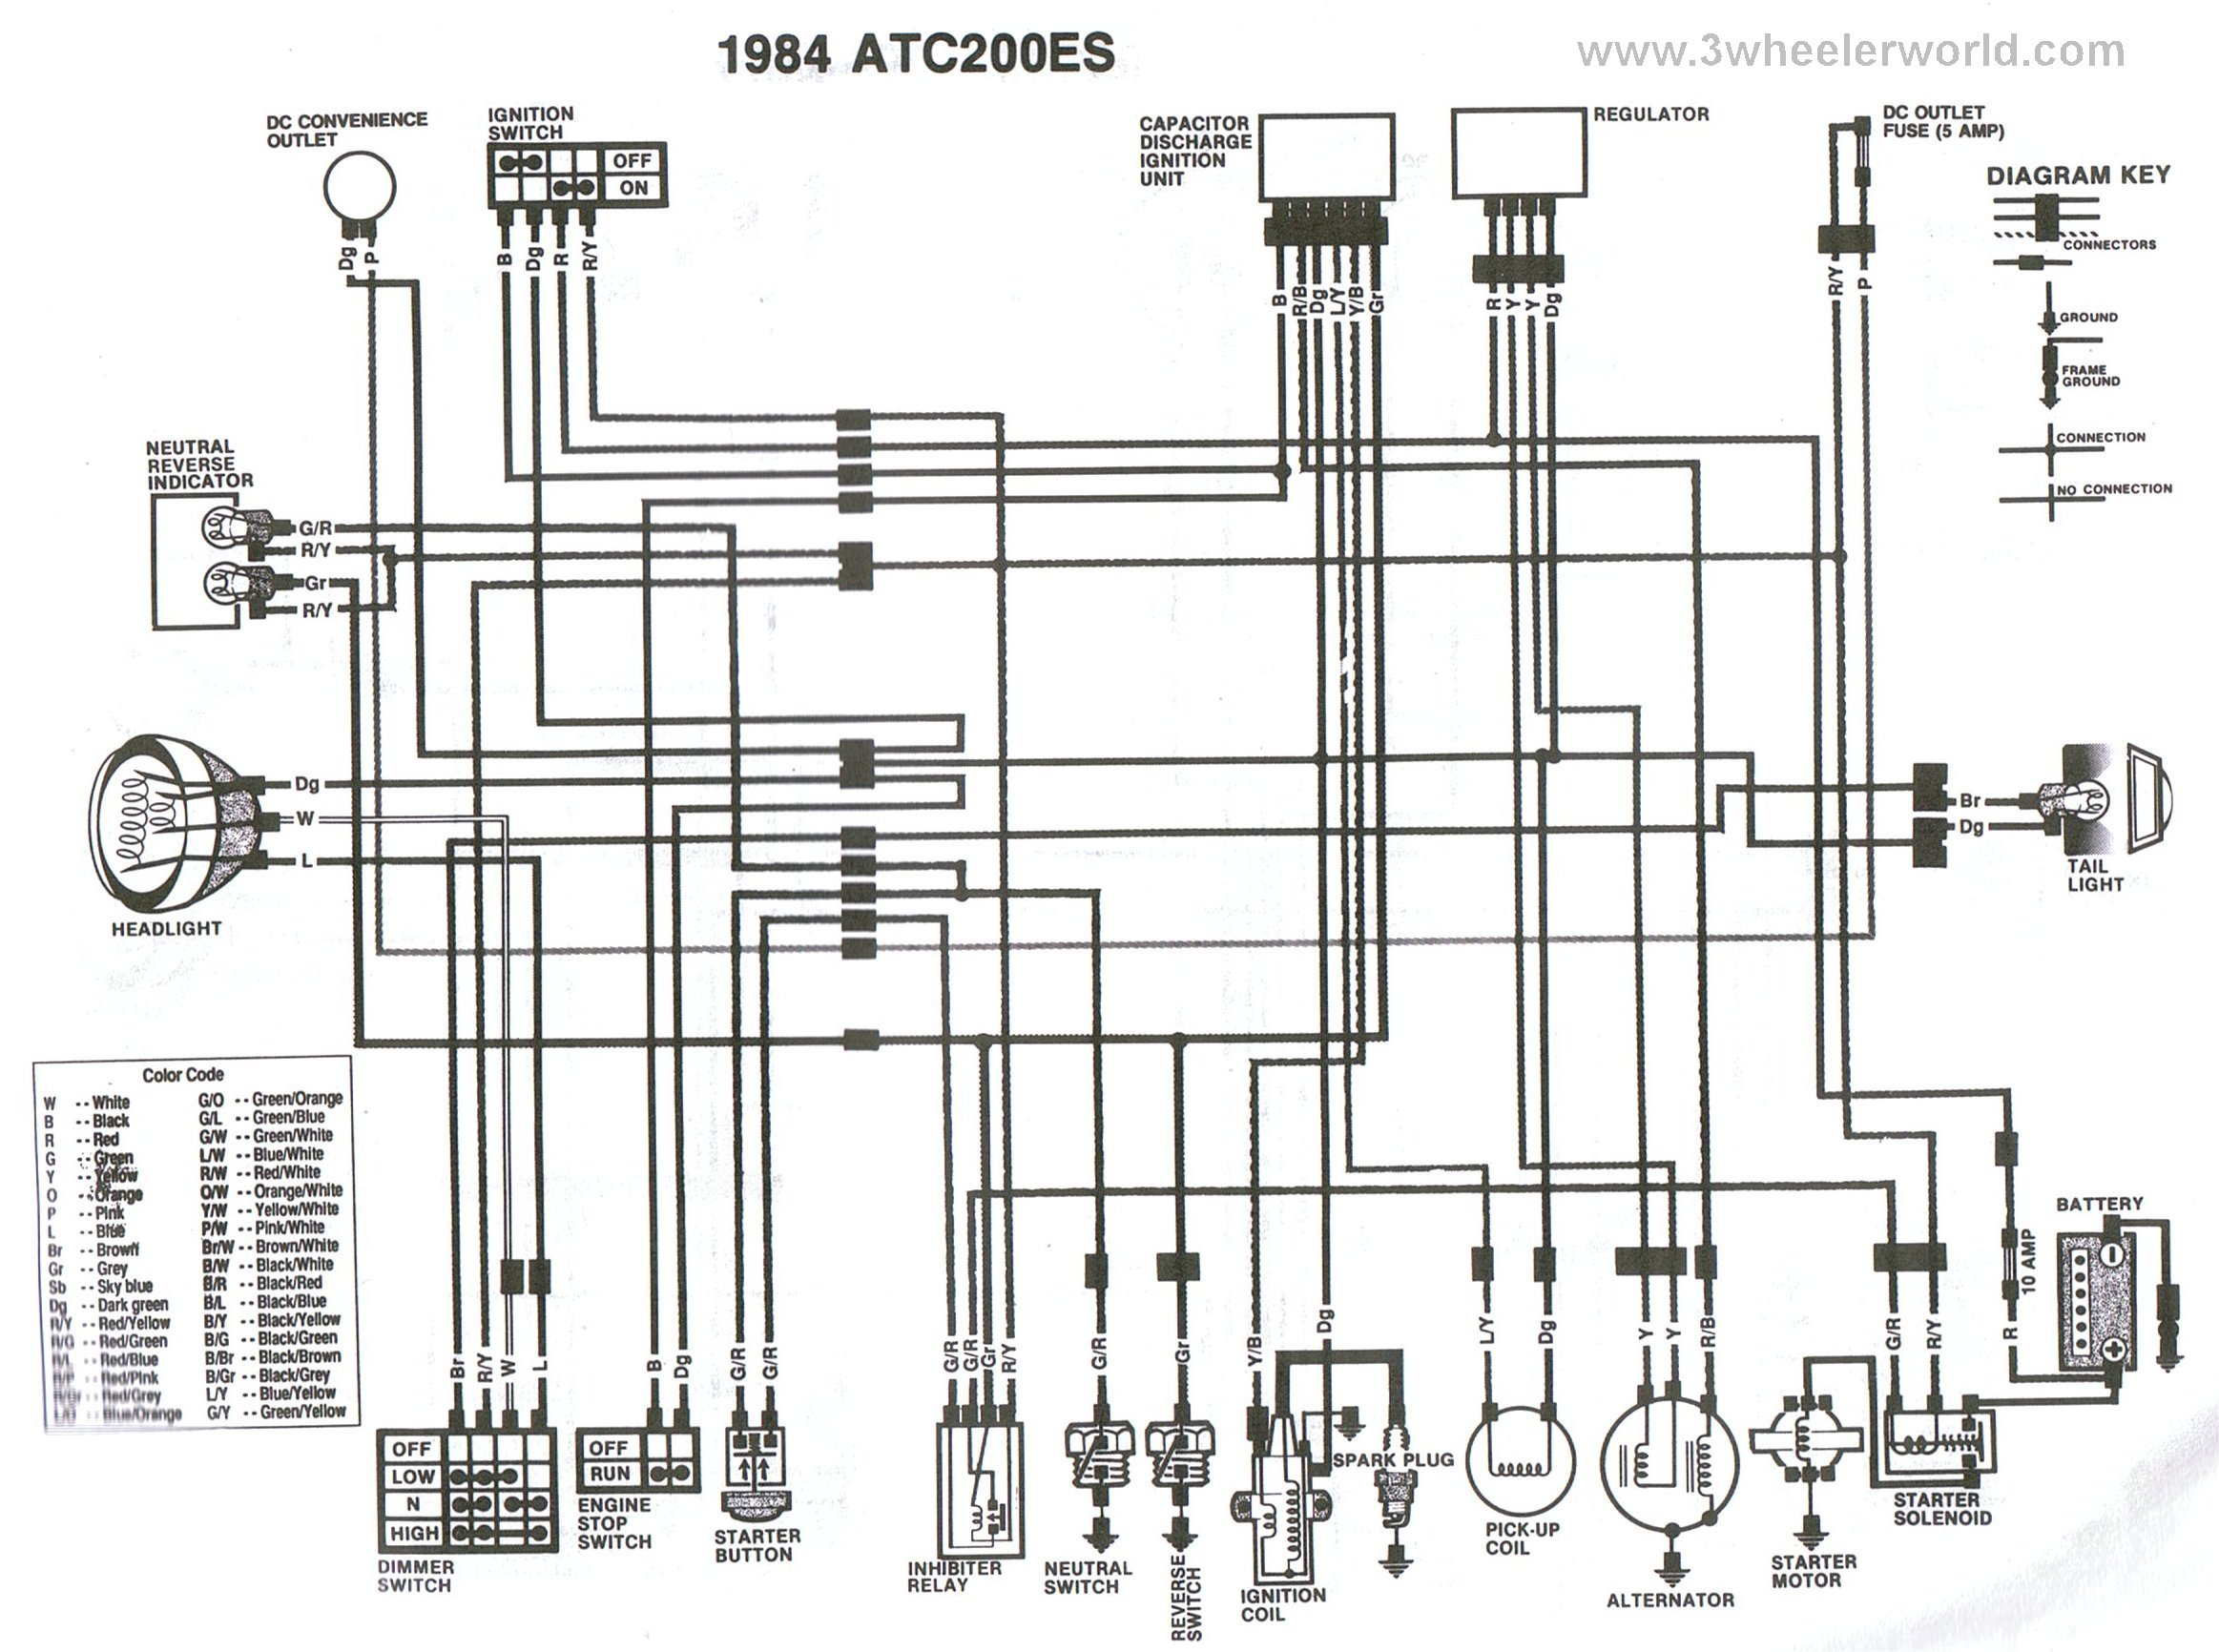 Wiring Diagram 1985 Atc250es Big Red Electrical Diagrams